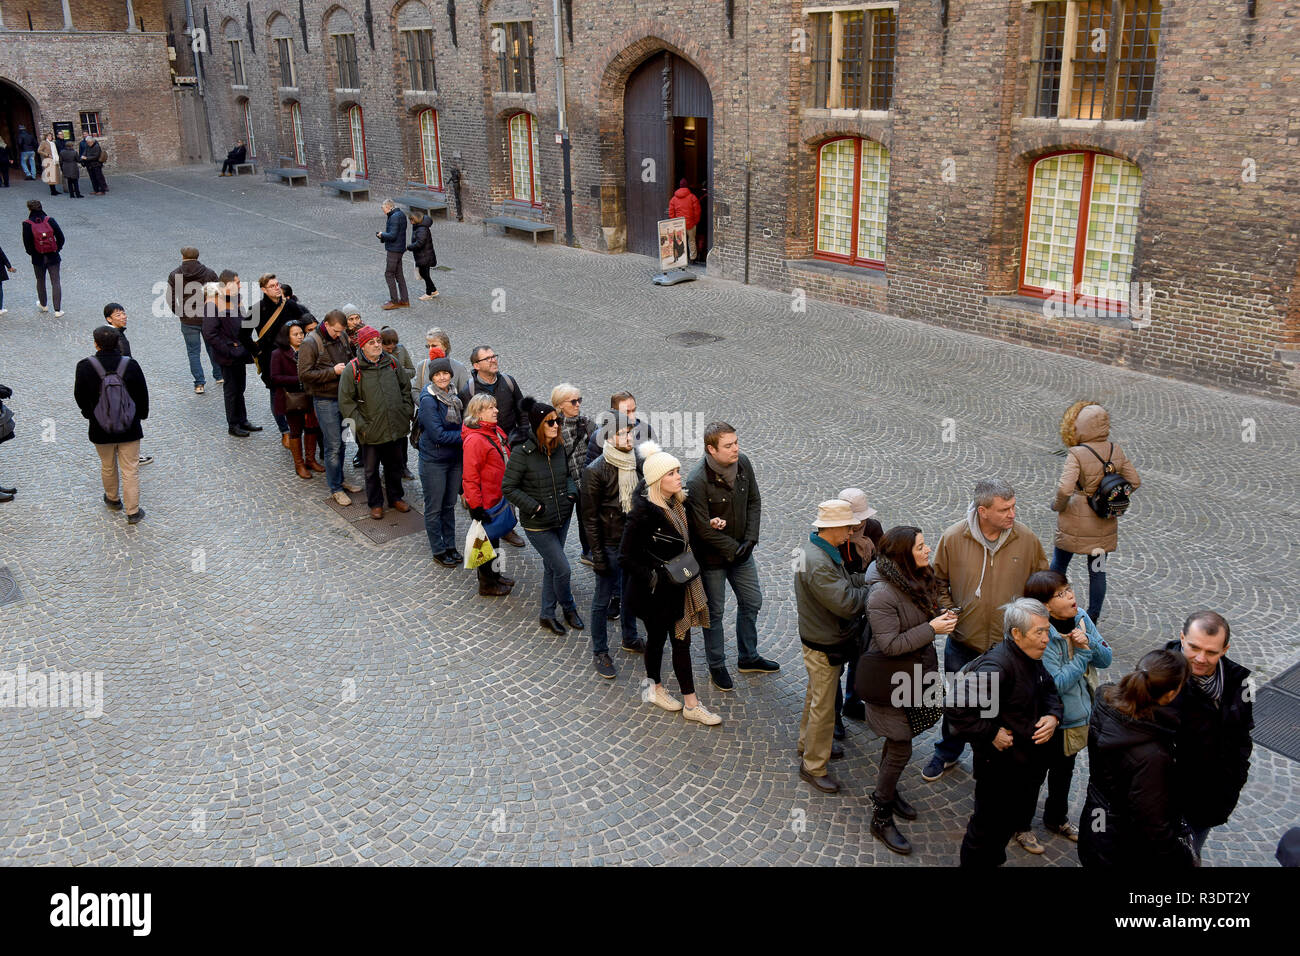 Toursts queueing to climb the Belfry Tower in Bruges (Brugge), Belgium Stock Photo